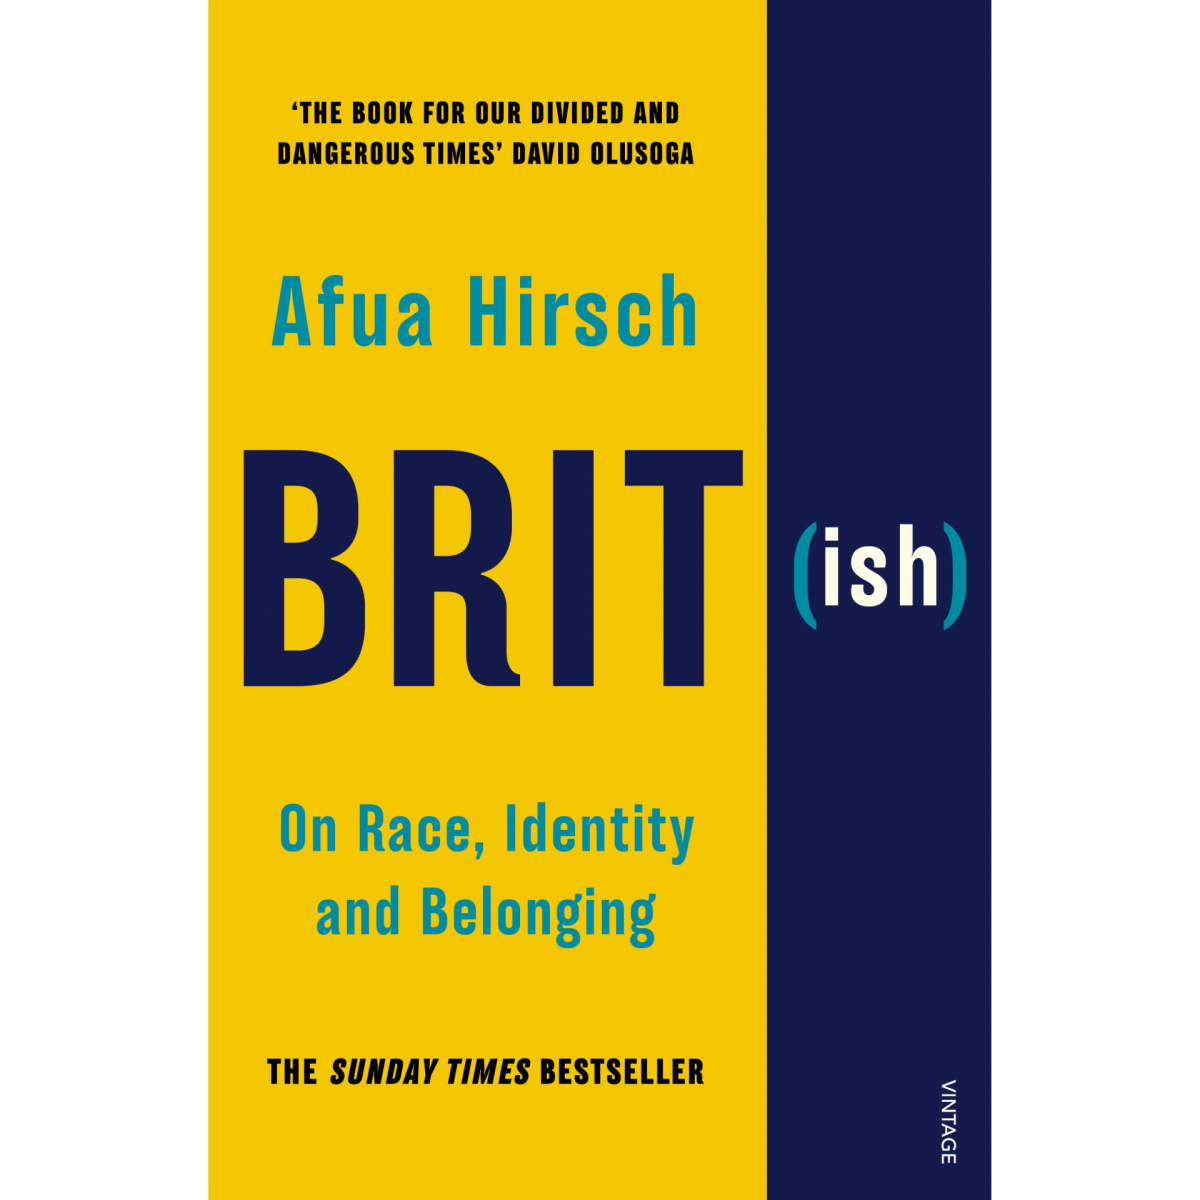 Brit(ish): On Race, Identity and Belonging Paperback by Afua Hirsch